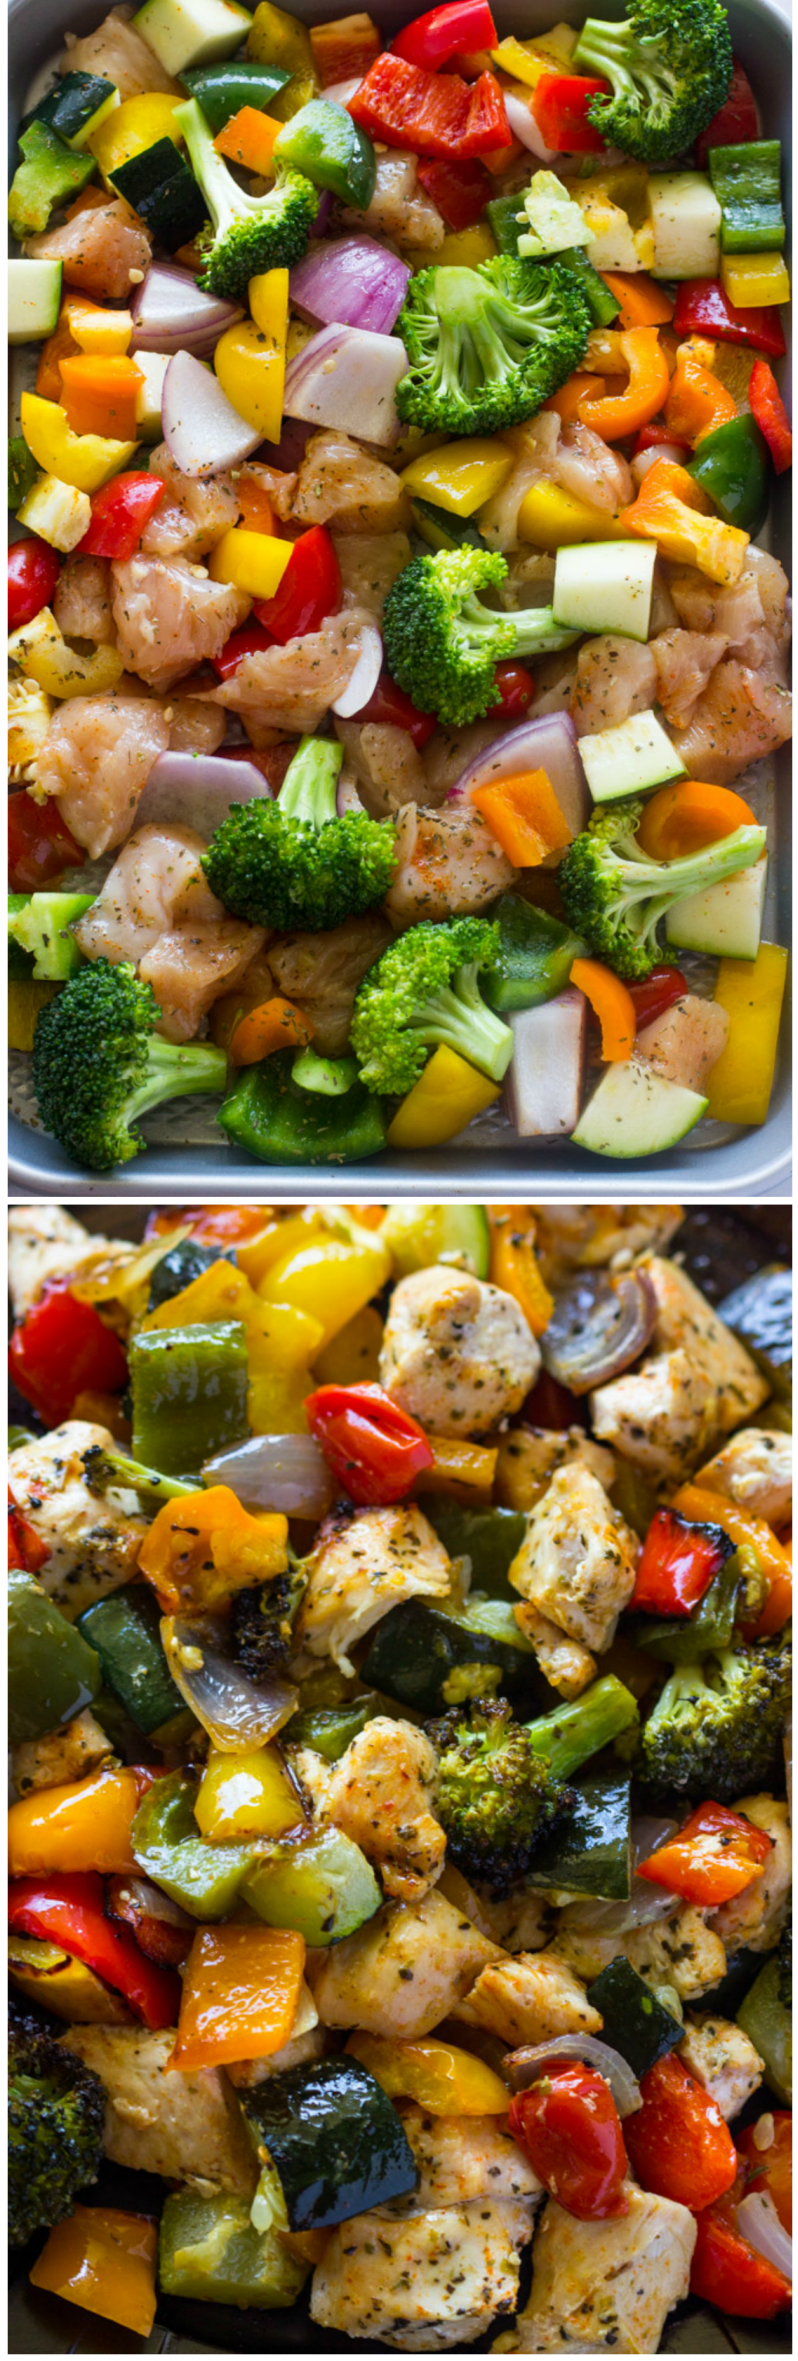 Healthy Roasted Chicken and Veggies in just 15 Minutes